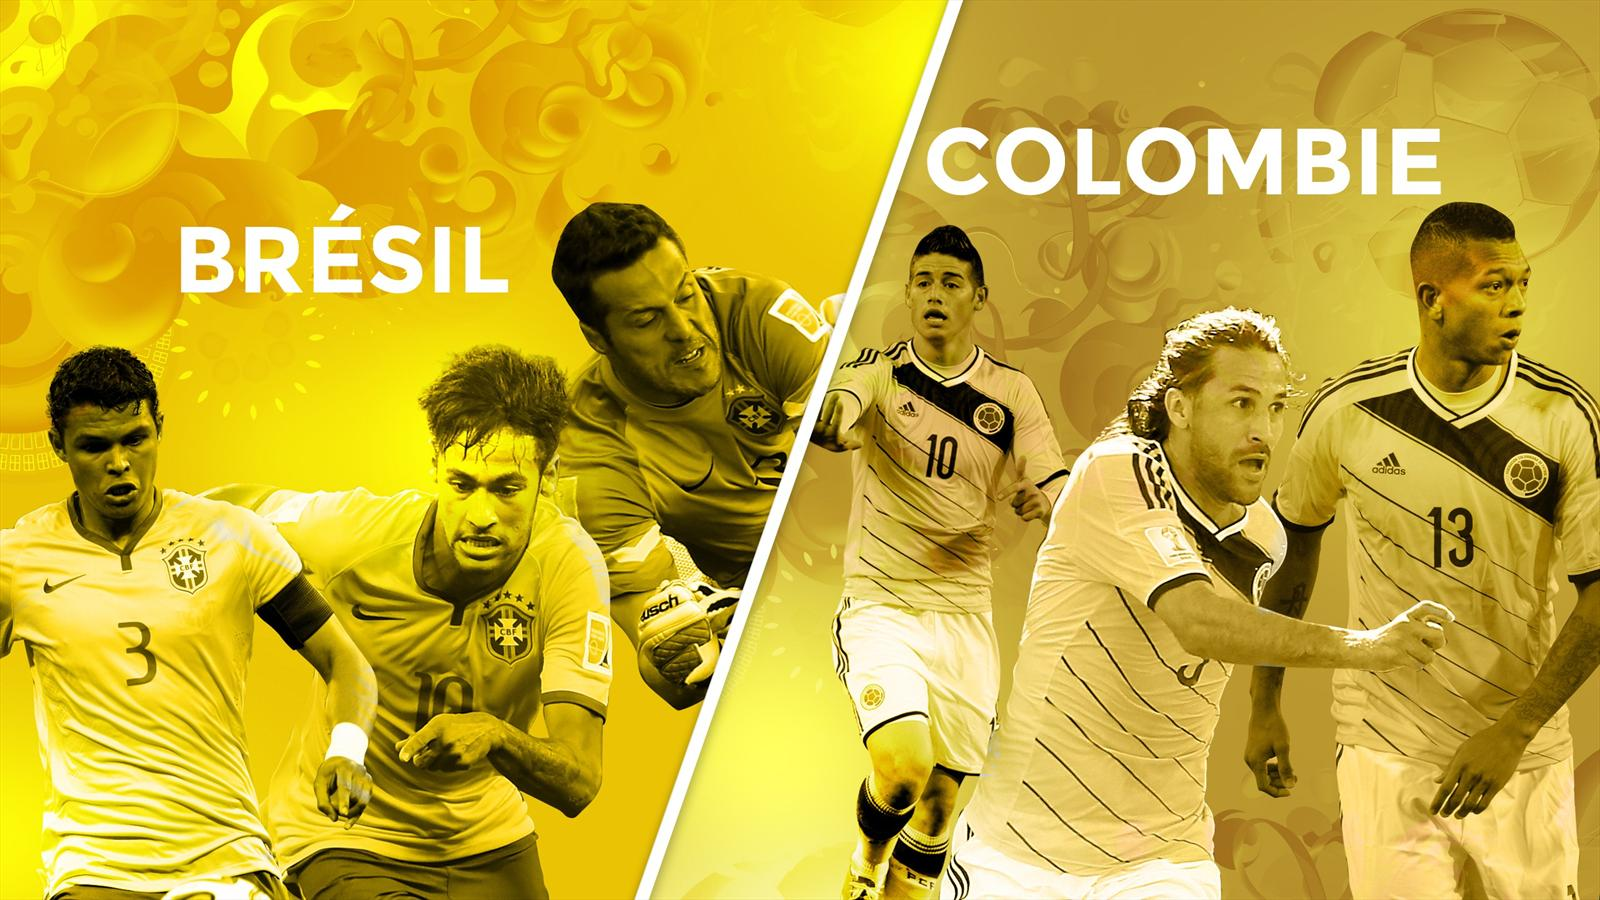 Match Brésil Colombie en direct live streaming